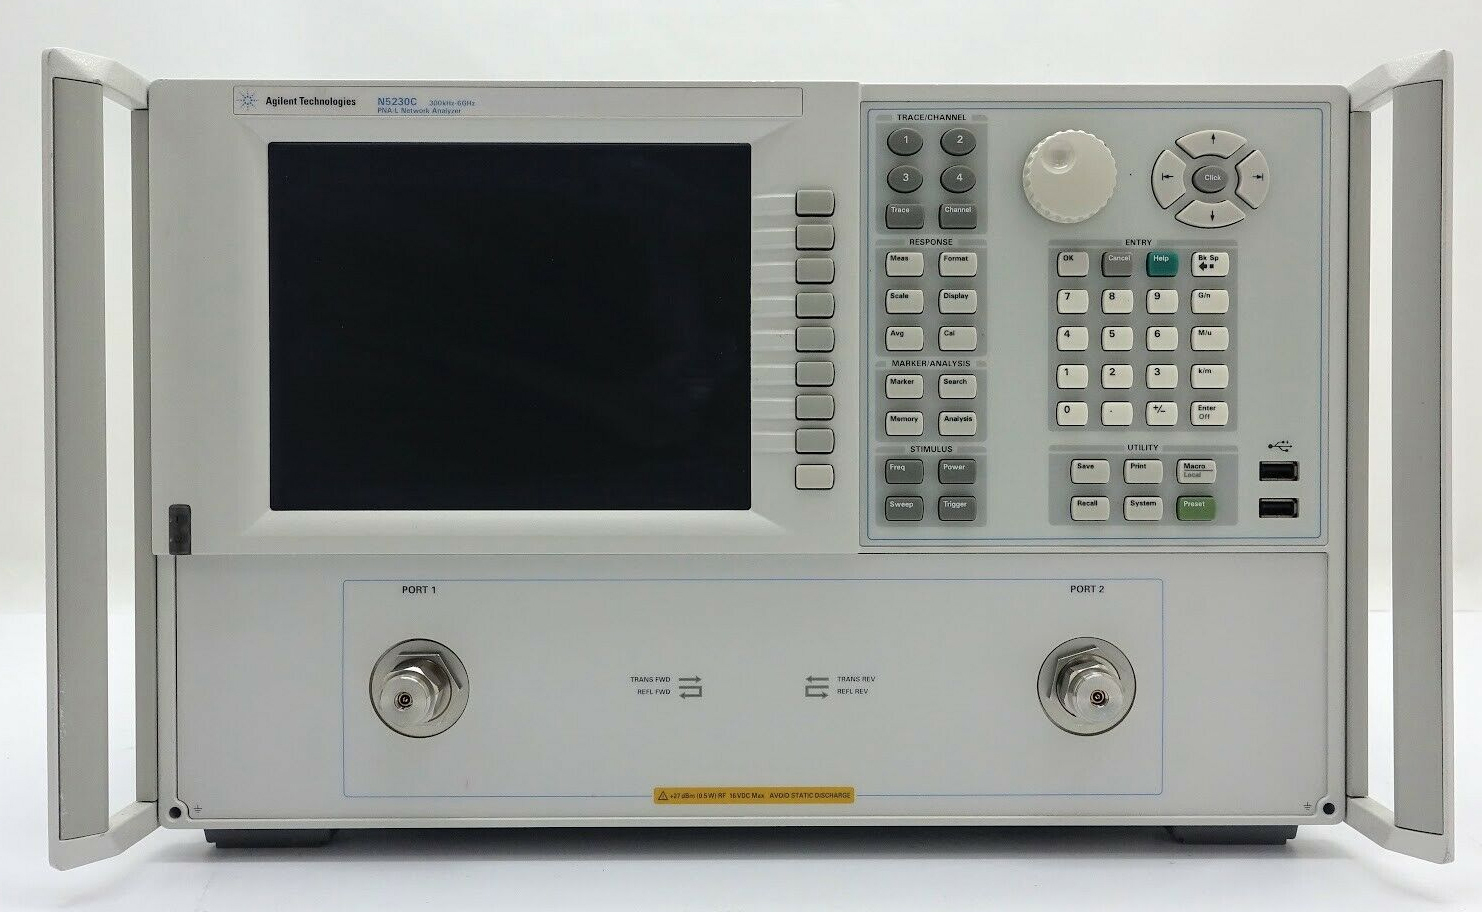 Similar product is Agilent / Keysight N5230C